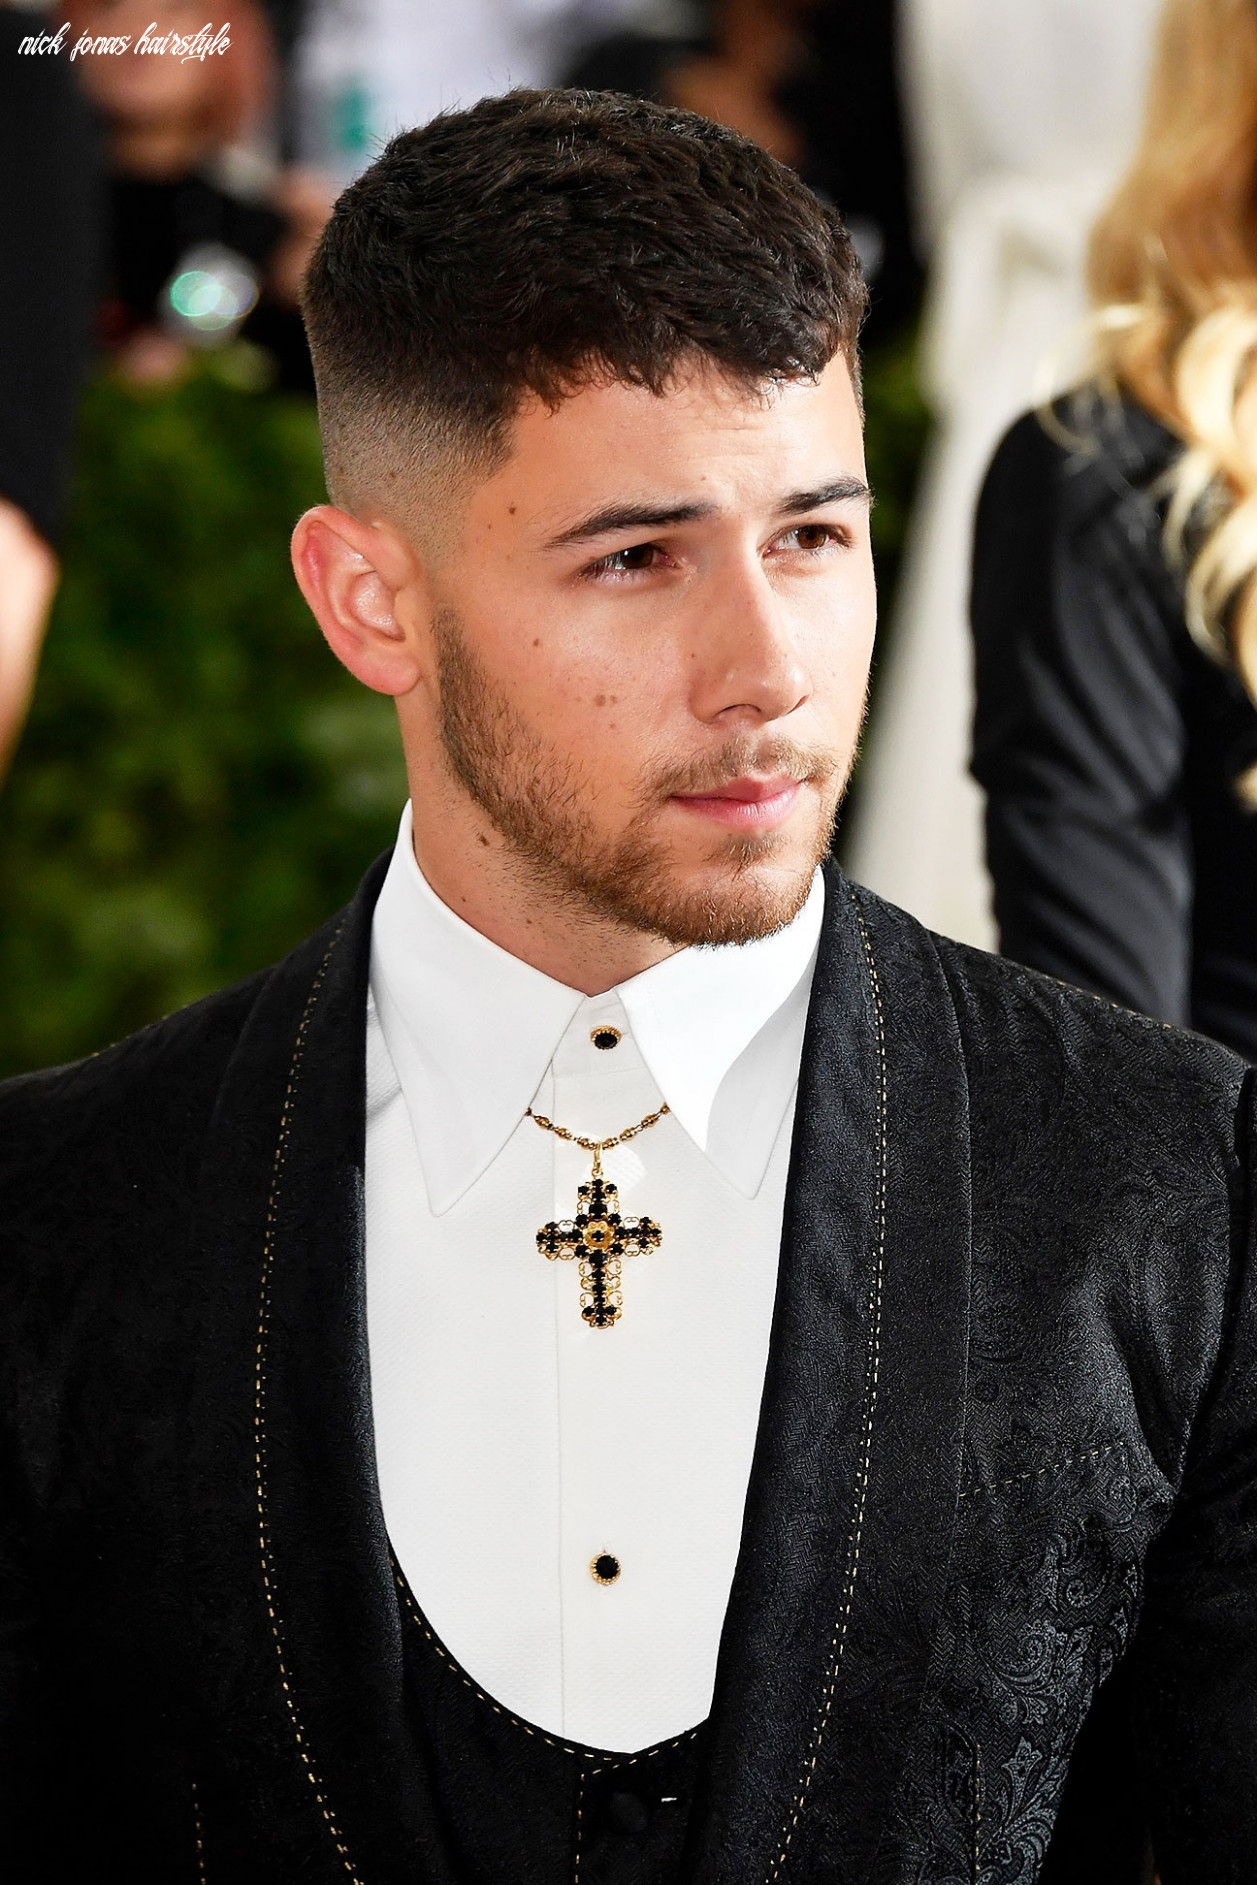 How to Get Nick Jonas's Haircut from the Met Gala | GQ